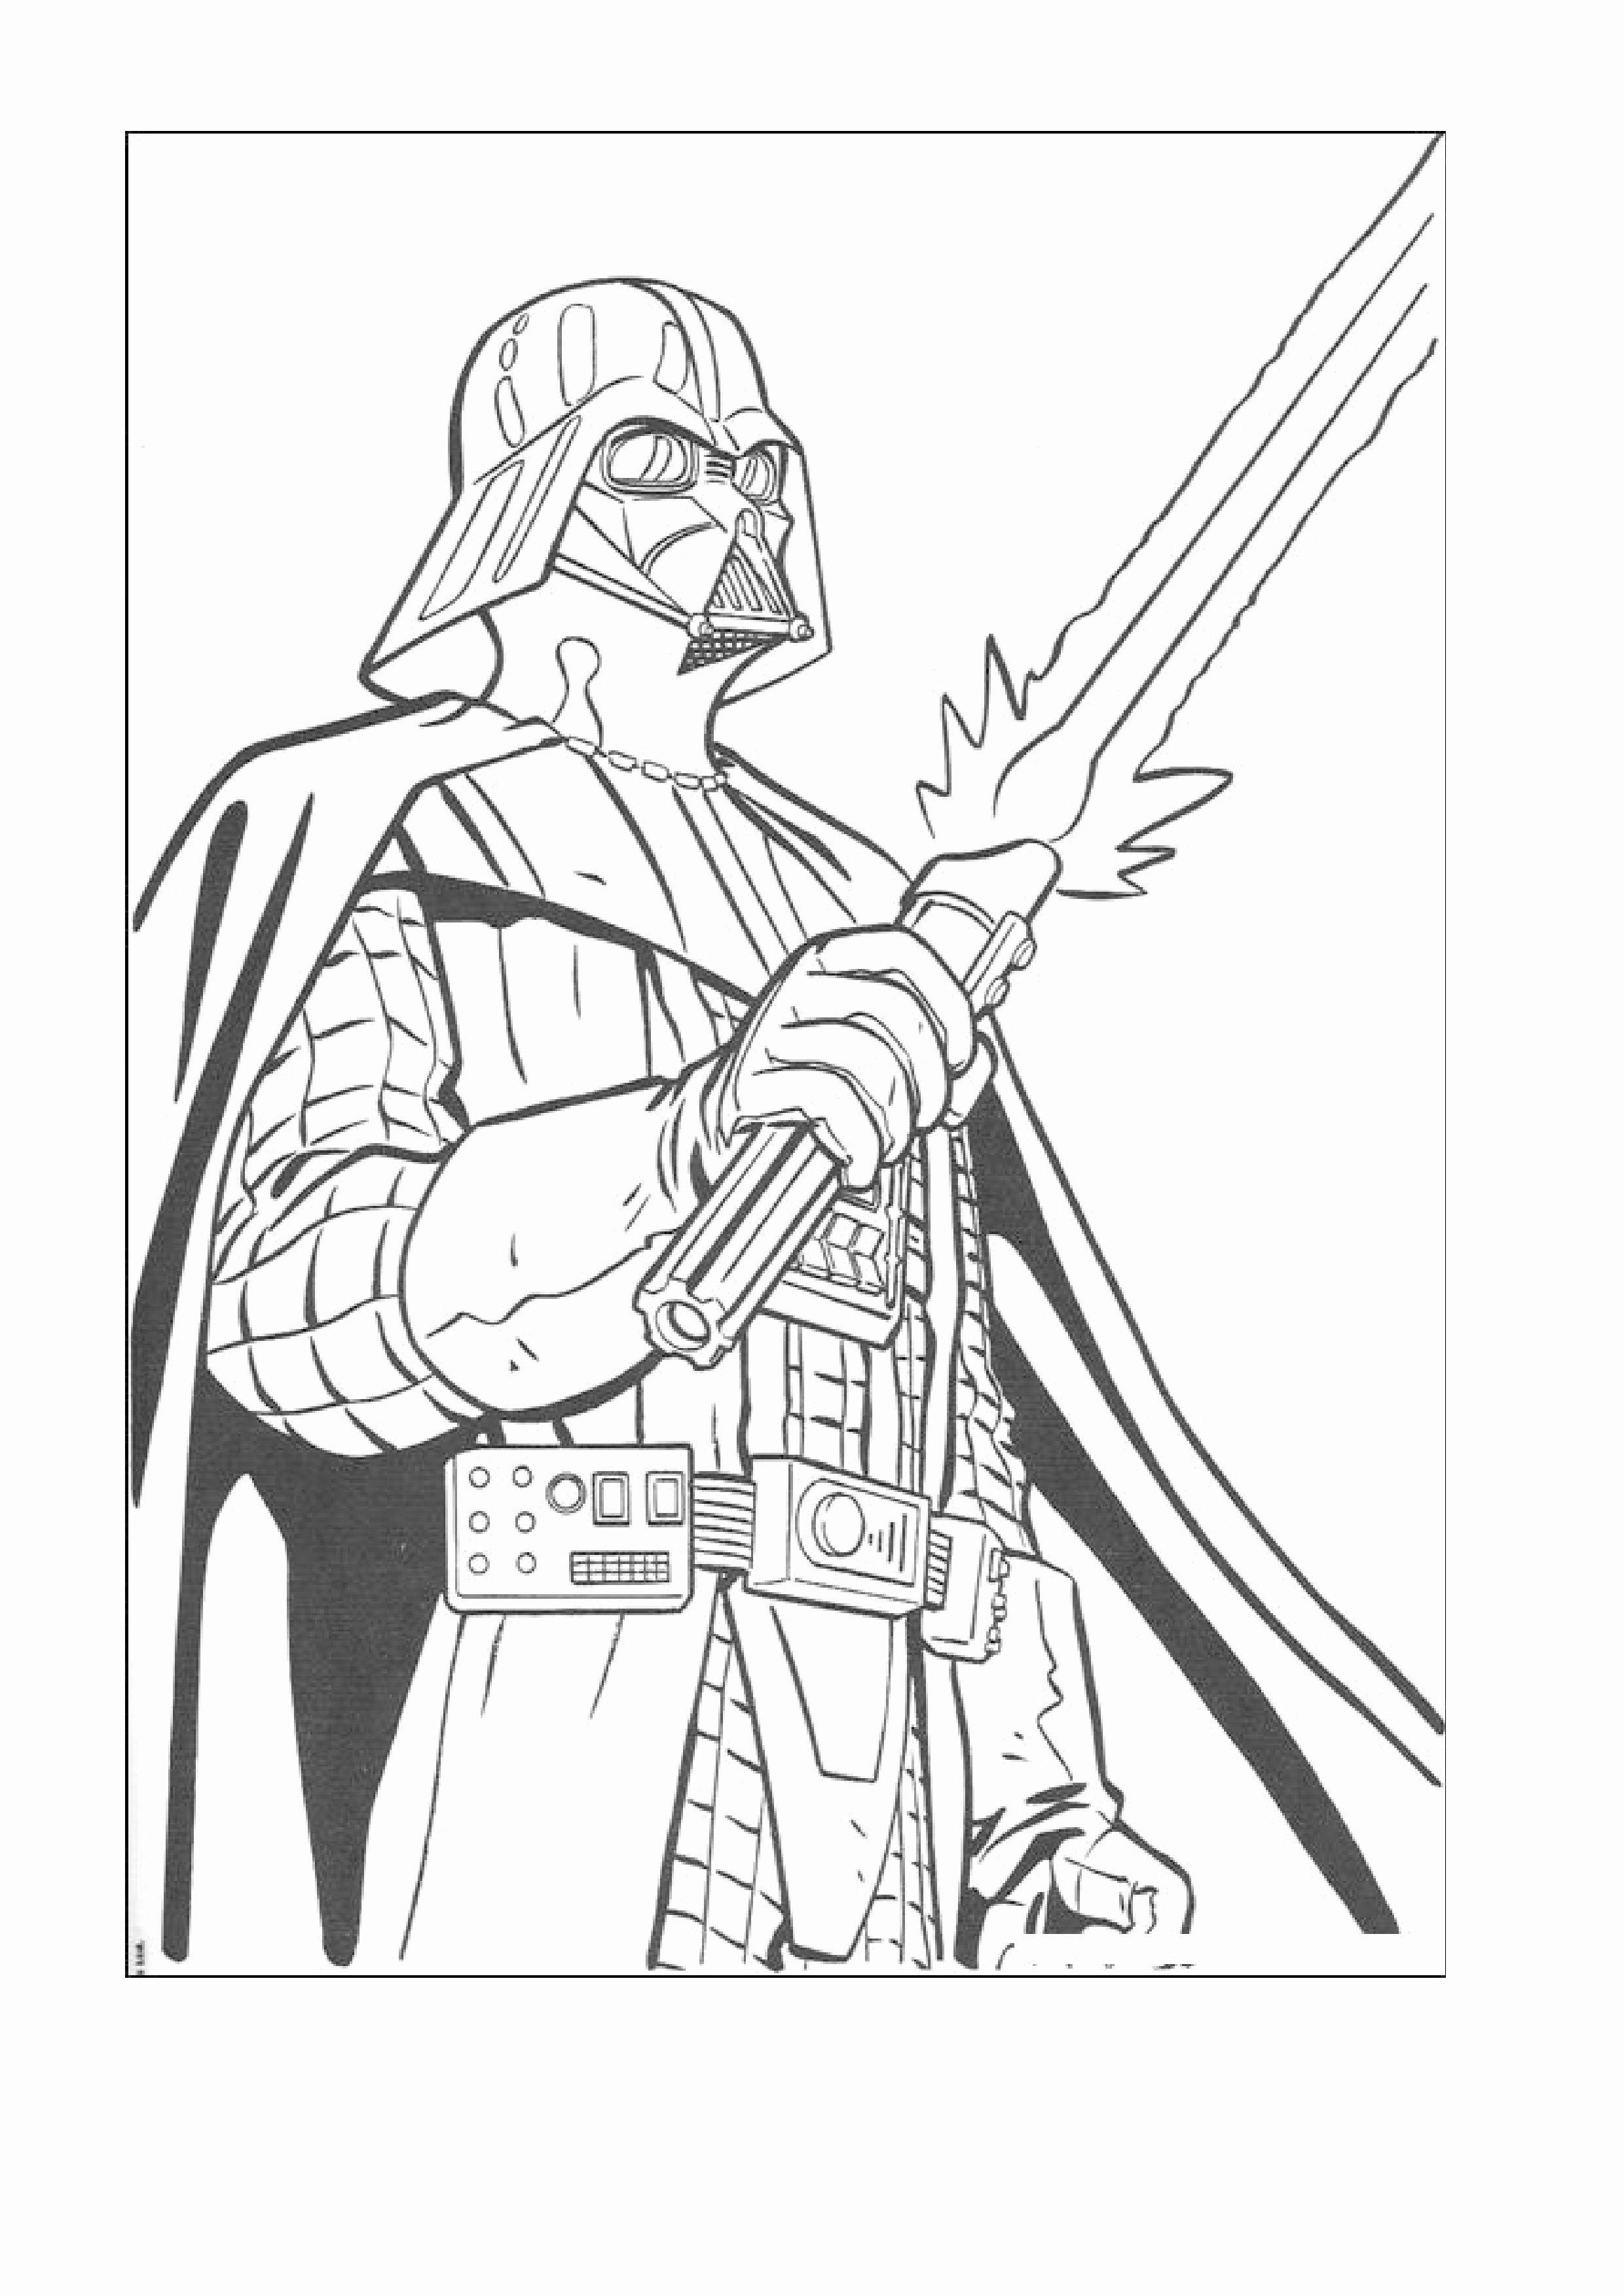 Darth Vader Coloring Page Inspirational Darth Maul Free Coloring Pages In 2020 Star Wars Drawings Star Wars Coloring Book Star Wars Coloring Sheet